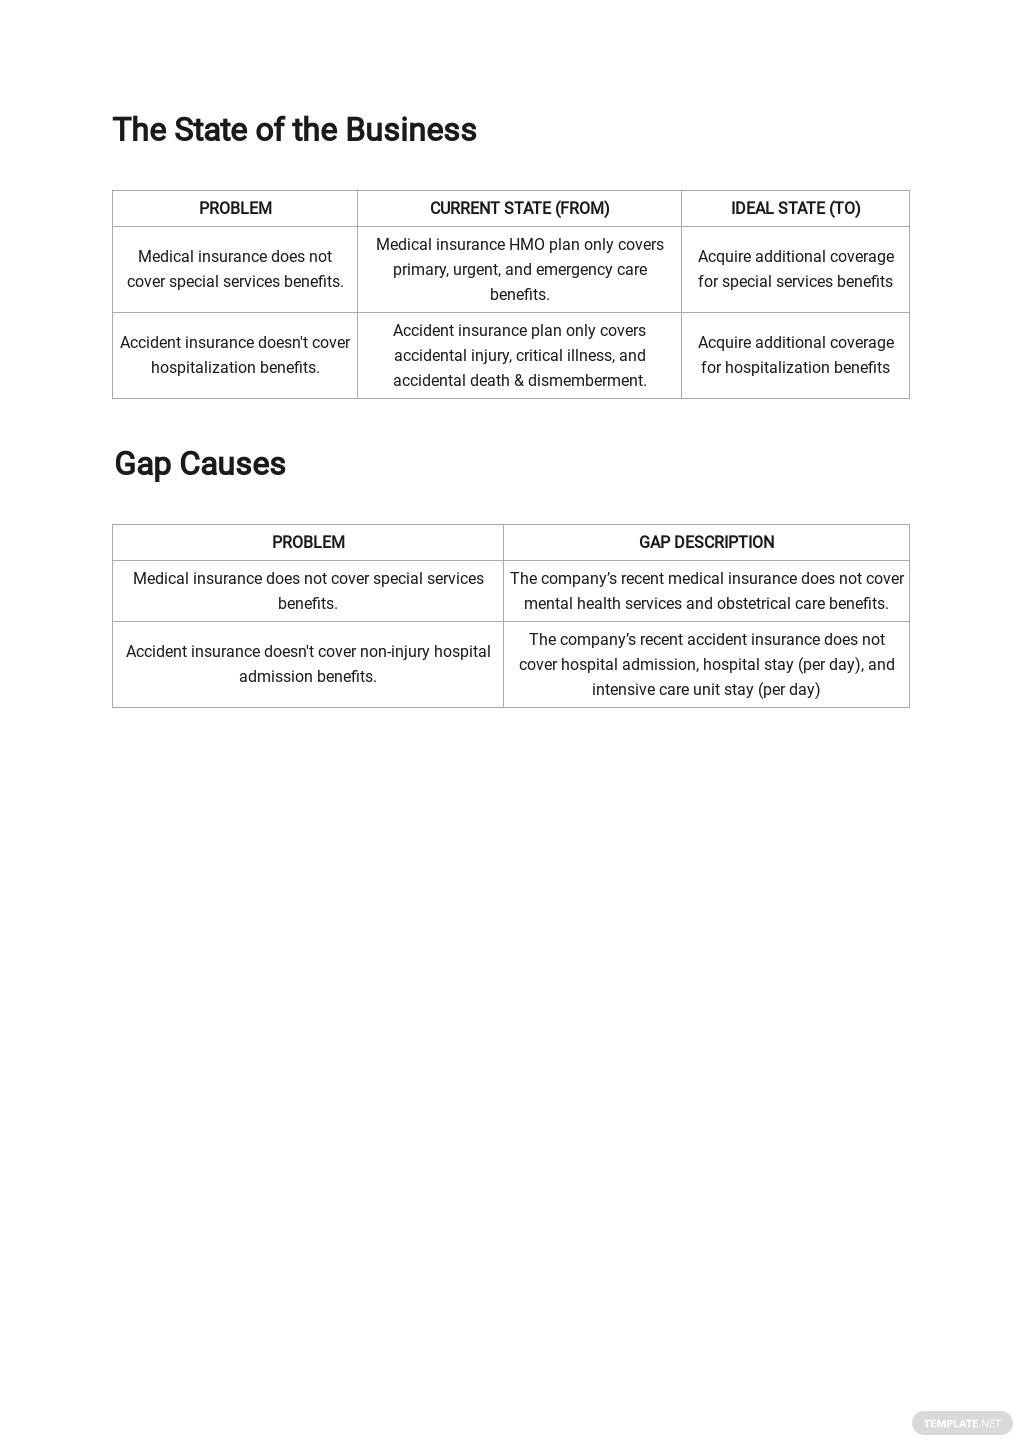 Insurance Needs Analysis Template [Free PDF] - Google Docs, Google Sheets, Word